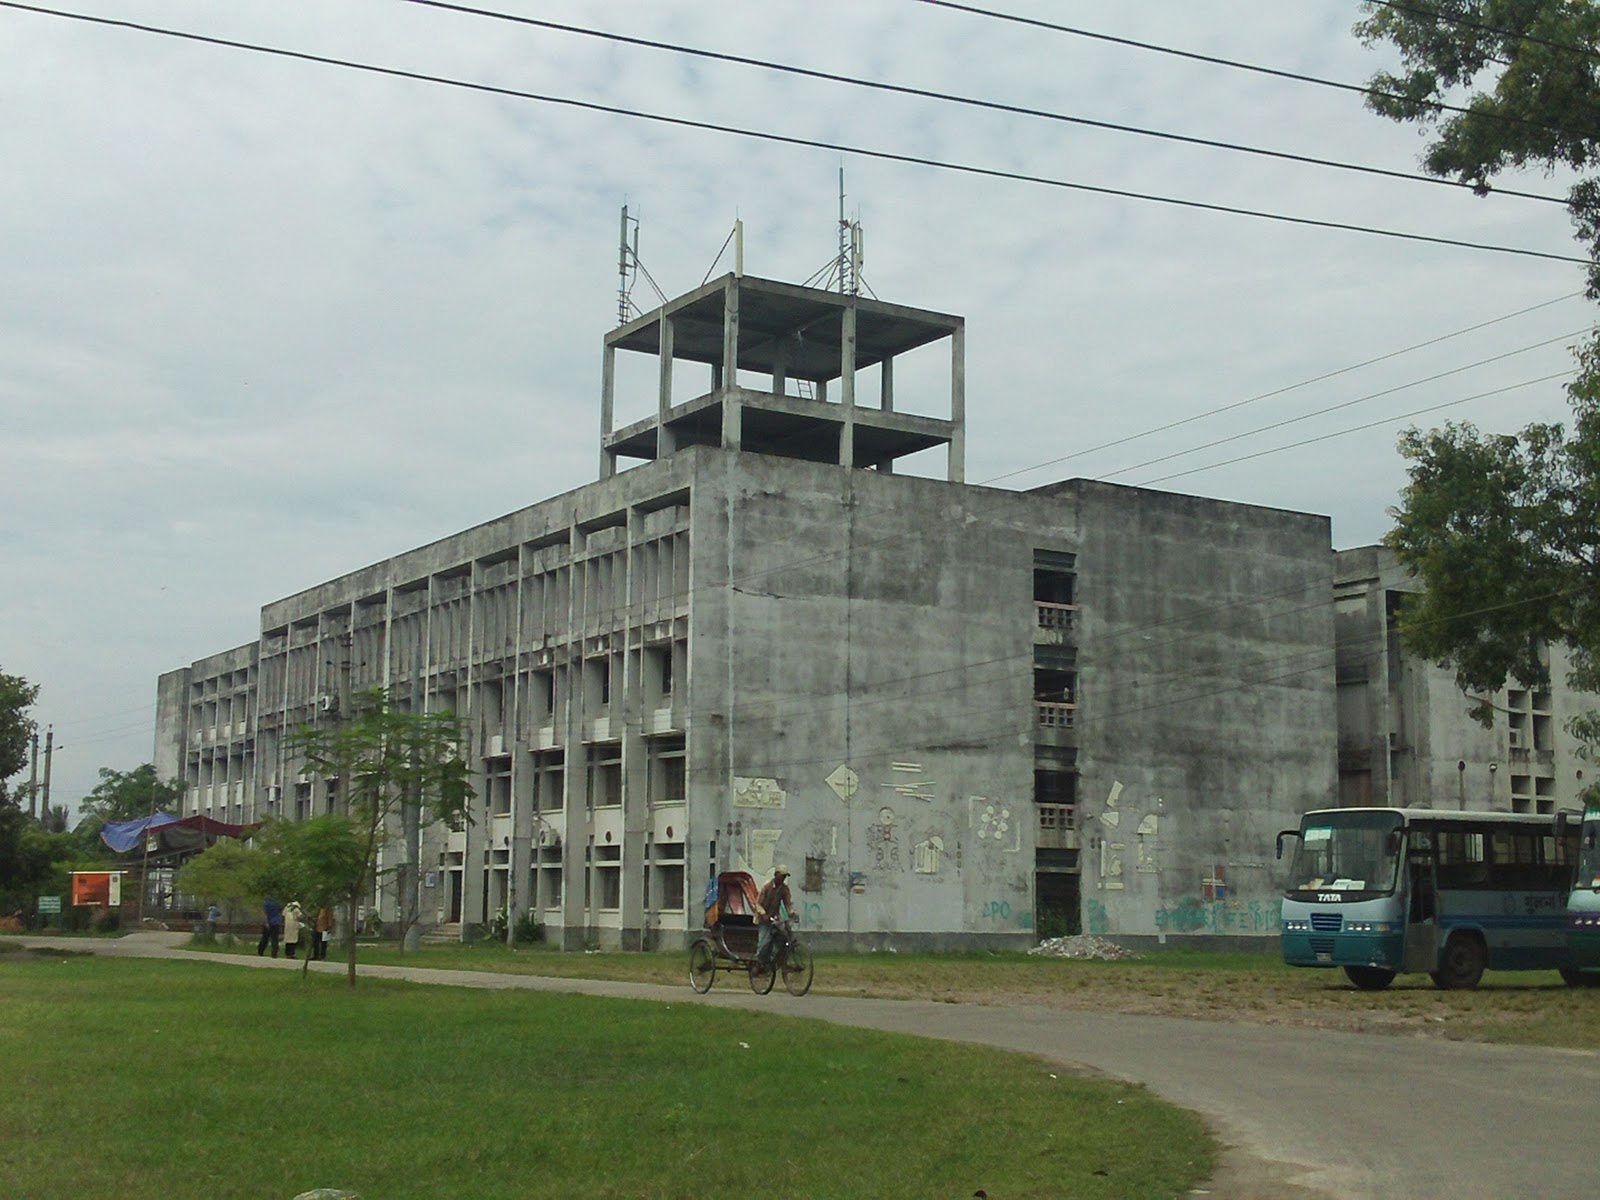 khulna chat Chittagong division, officially known as chattogram division, is geographically the largest of the eight administrative divisions of bangladeshit covers the south-easternmost areas of the country, with a total area of 33,77118 km 2 (13,03913 sq mi) and a population at the 2011 census of 28,423,019.